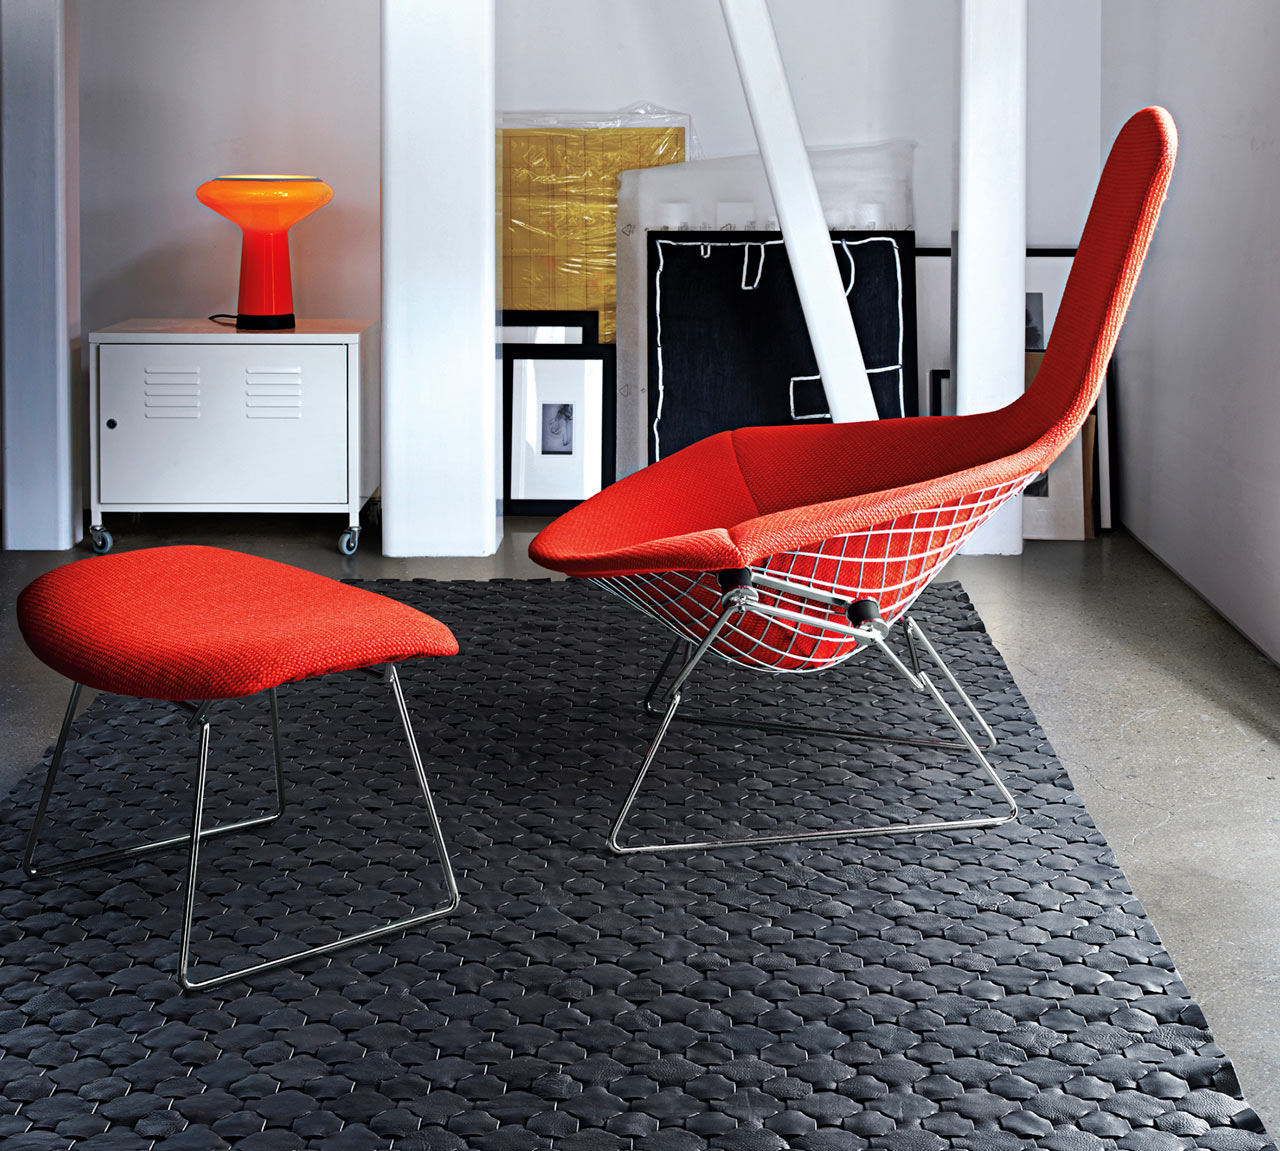 Interlocking Leather Rugs by Elvis & Kresse for FLOR